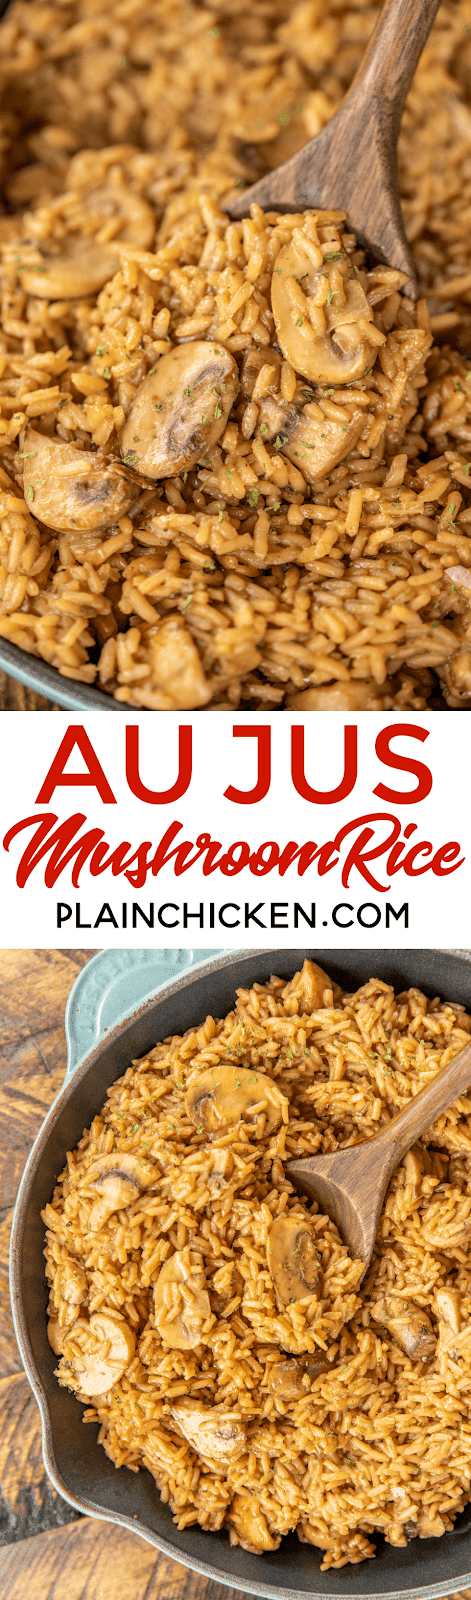 Au Jus Mushroom Rice - seriously delicious! Rice slow cooked in butter, onion, oregano, salt, pepper, beef broth, au jus gravy mix and mushrooms. I could make a meal out of this delicious rice!!! Ready to eat in under 30 minutes! Add some leftover steak, ground beef or pork for a quick main dish. #rice #beef #mushrooms